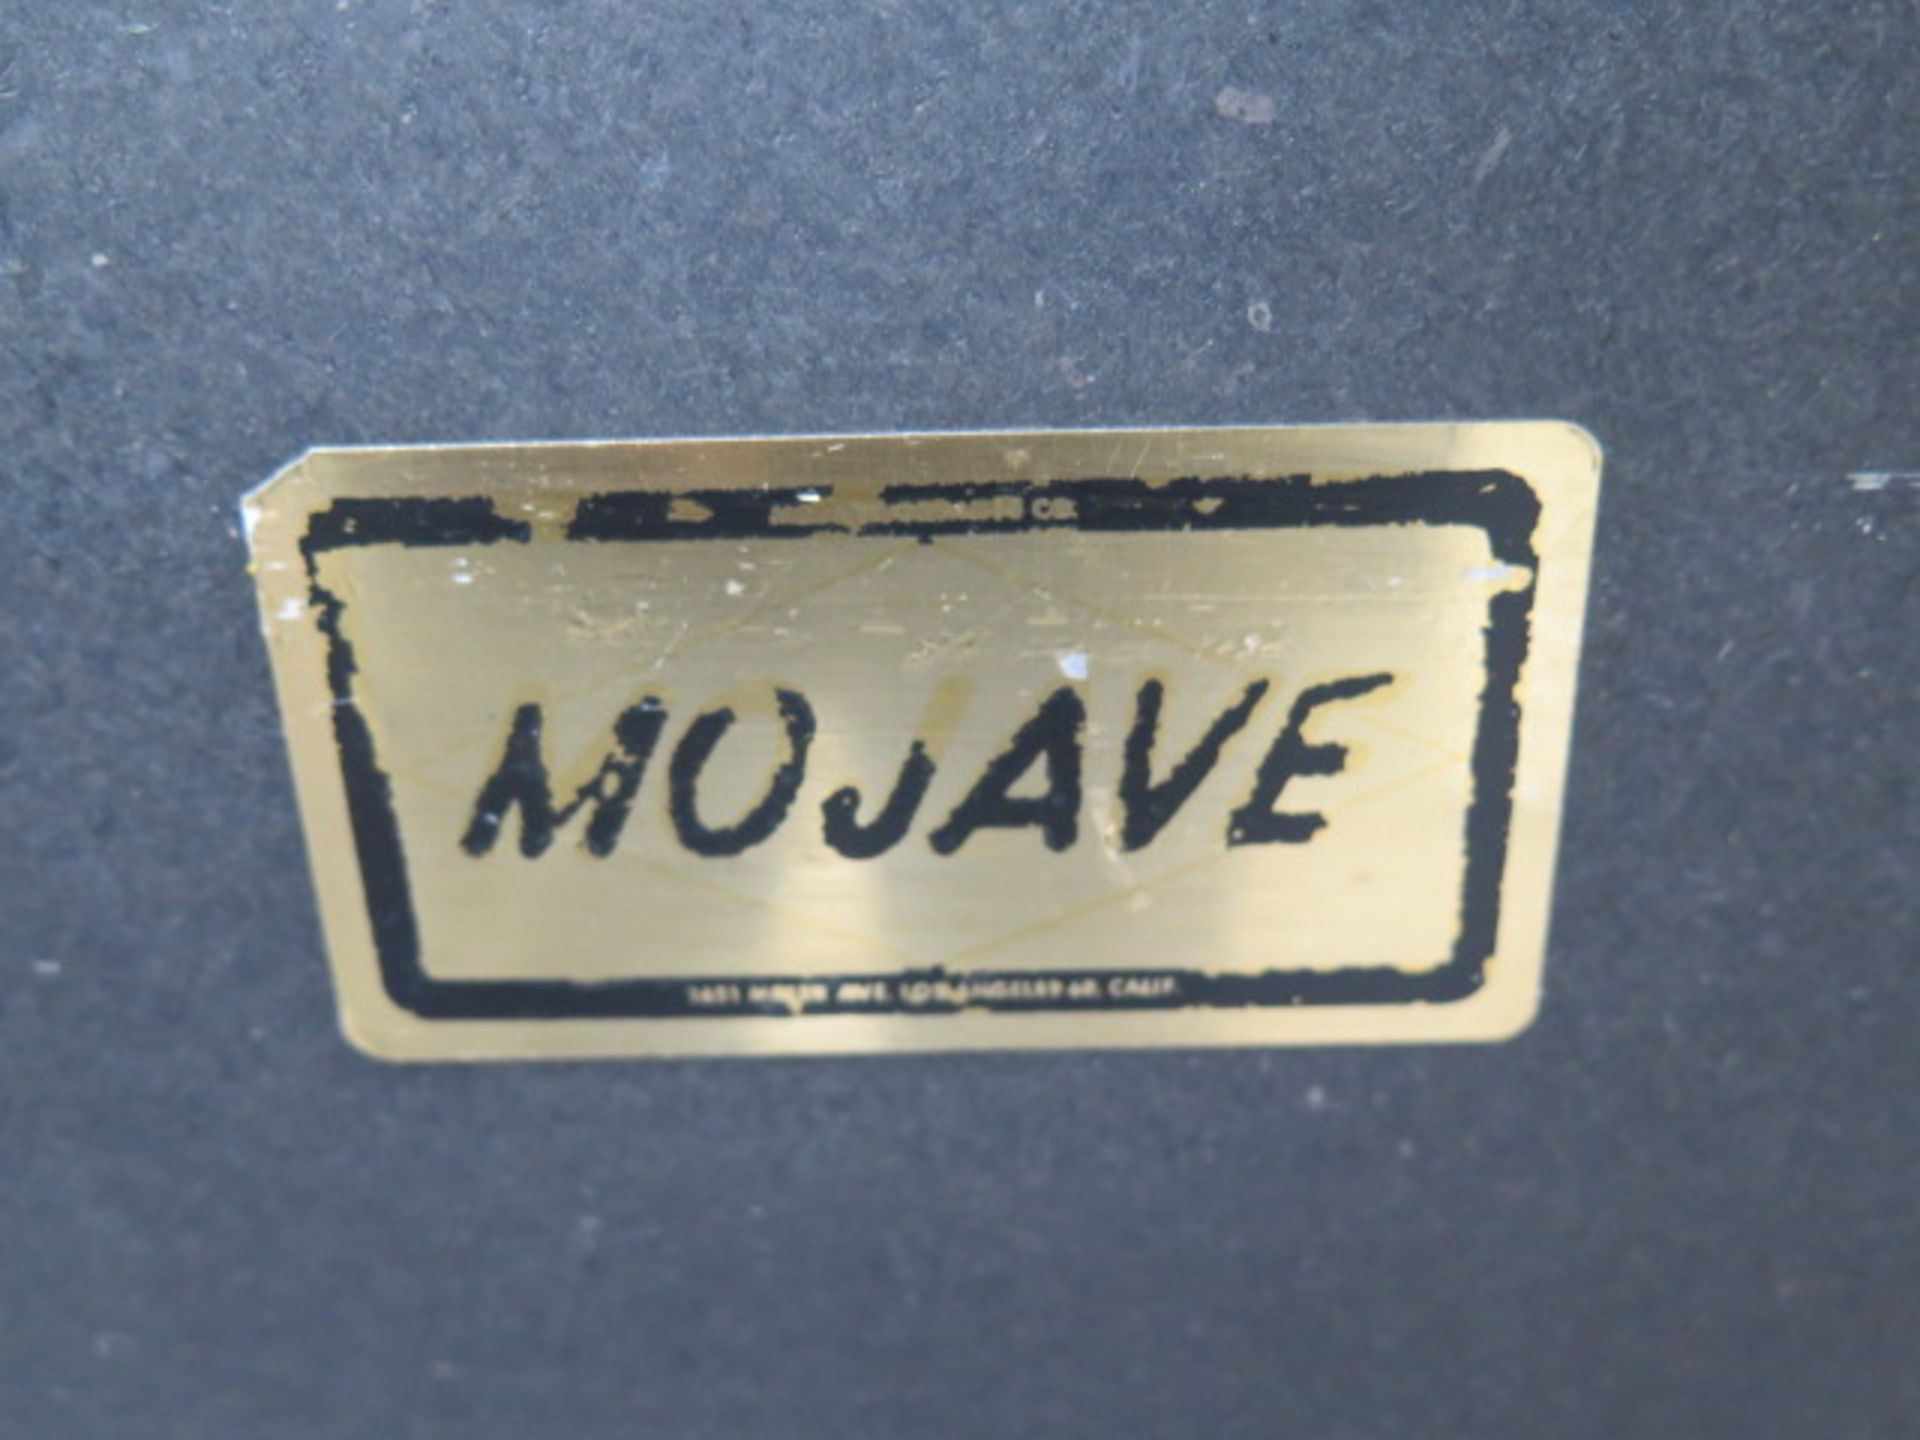 """Mojave 24"""" x 36"""" x 5"""" 2-Ledge Granite Surface Plate w/ Roll Stand (SOLD AS-IS - NO WARRANTY) - Image 3 of 4"""